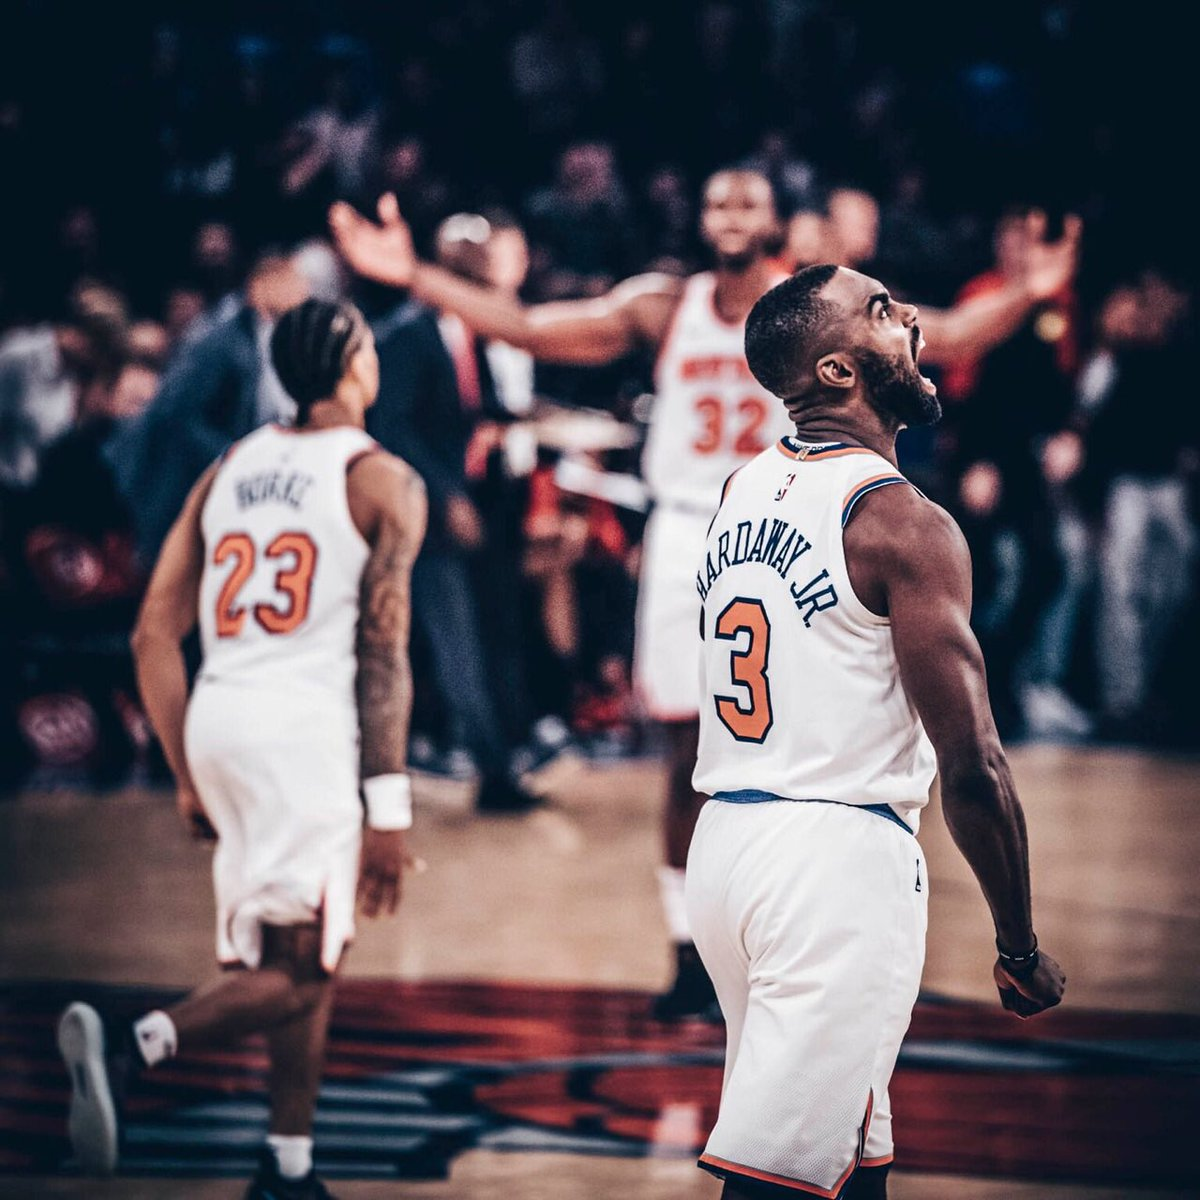 NEW YORK KNICKS's photo on GAME DAY